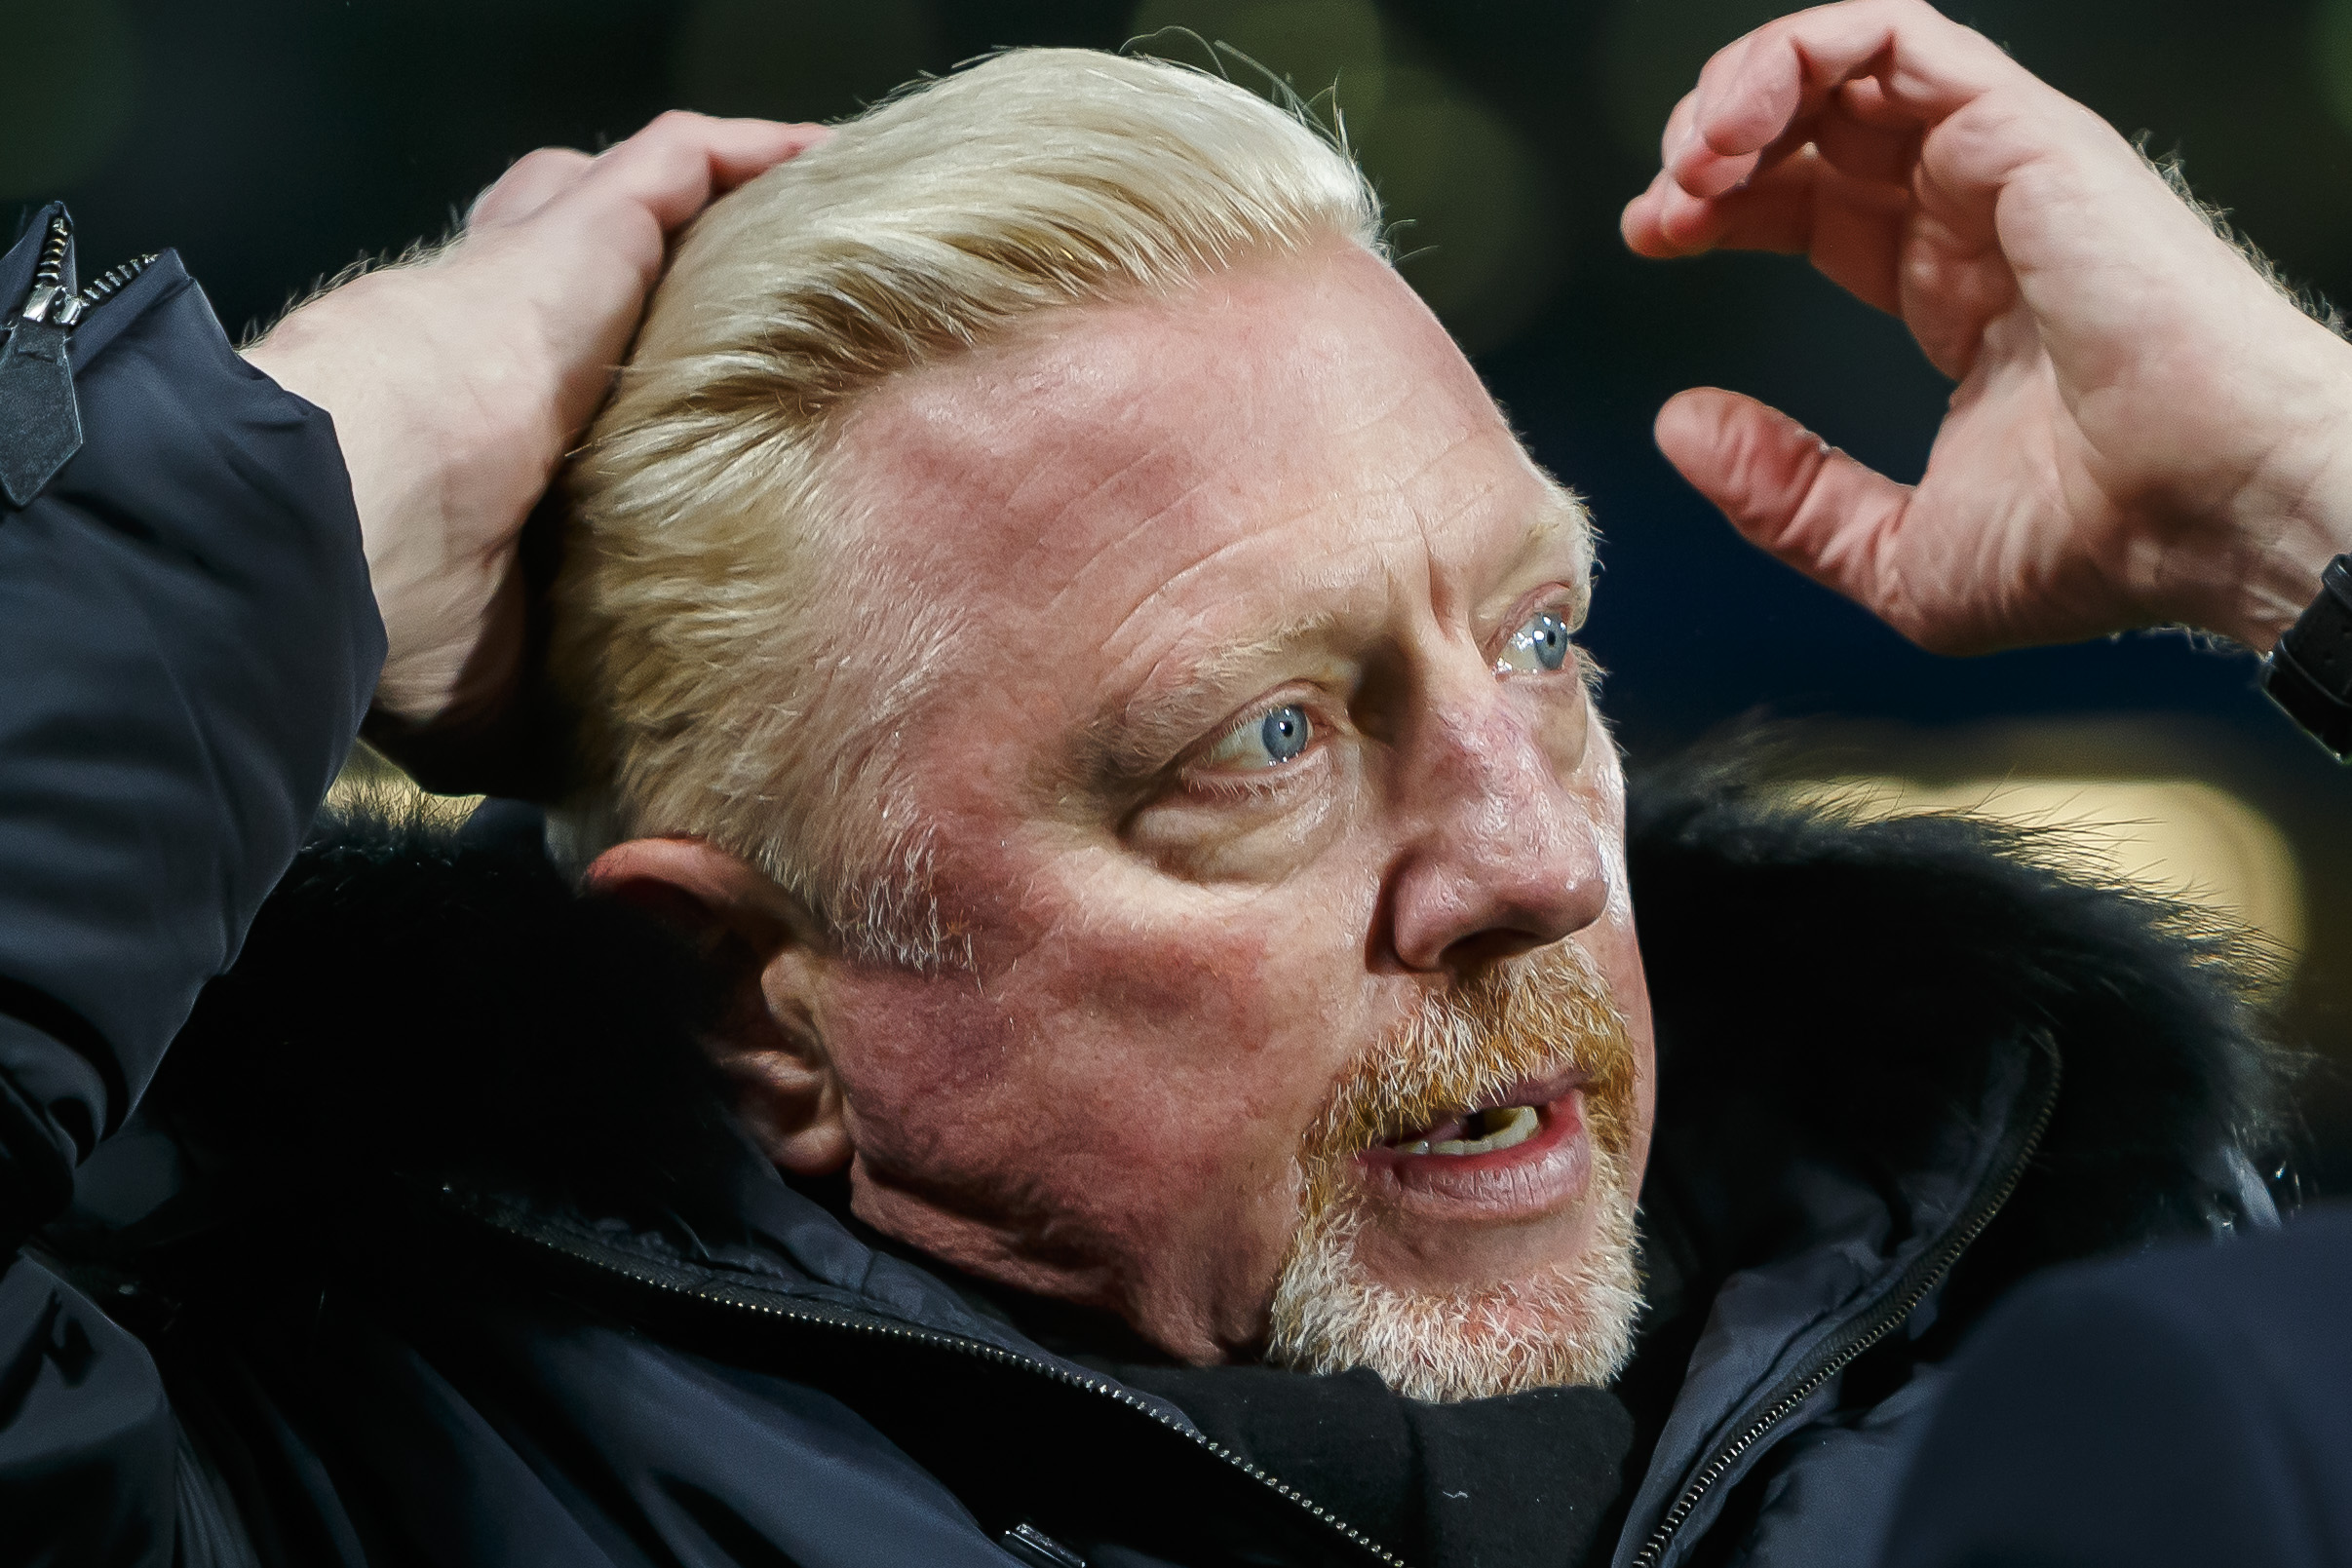 Boris Becker made enough money in tennis to last him a lifetime, but poor financial decisions in retirement left him bankrupt.